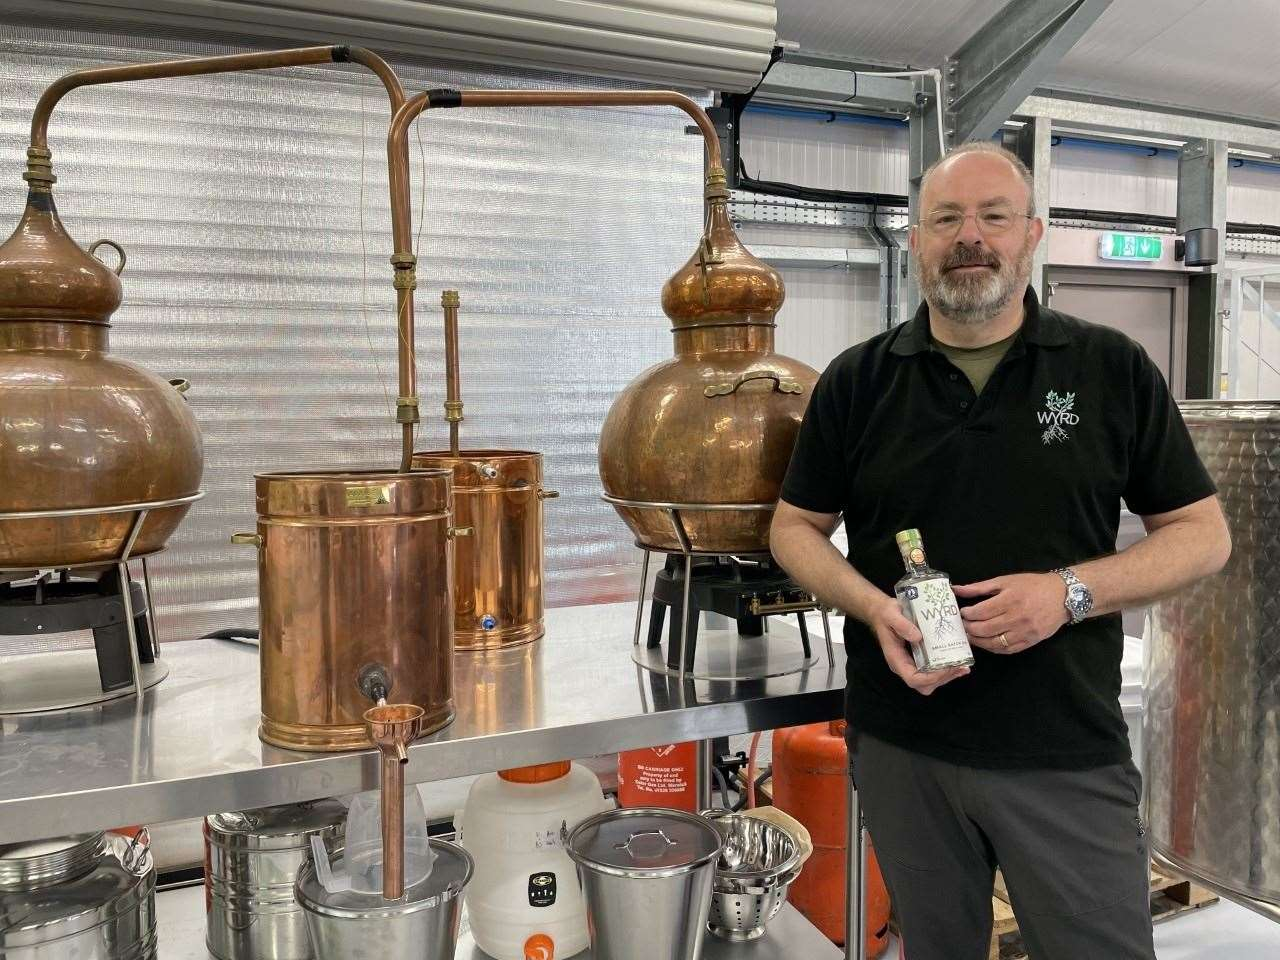 Mark and Kay Williams created New Forest Spirits in 2018